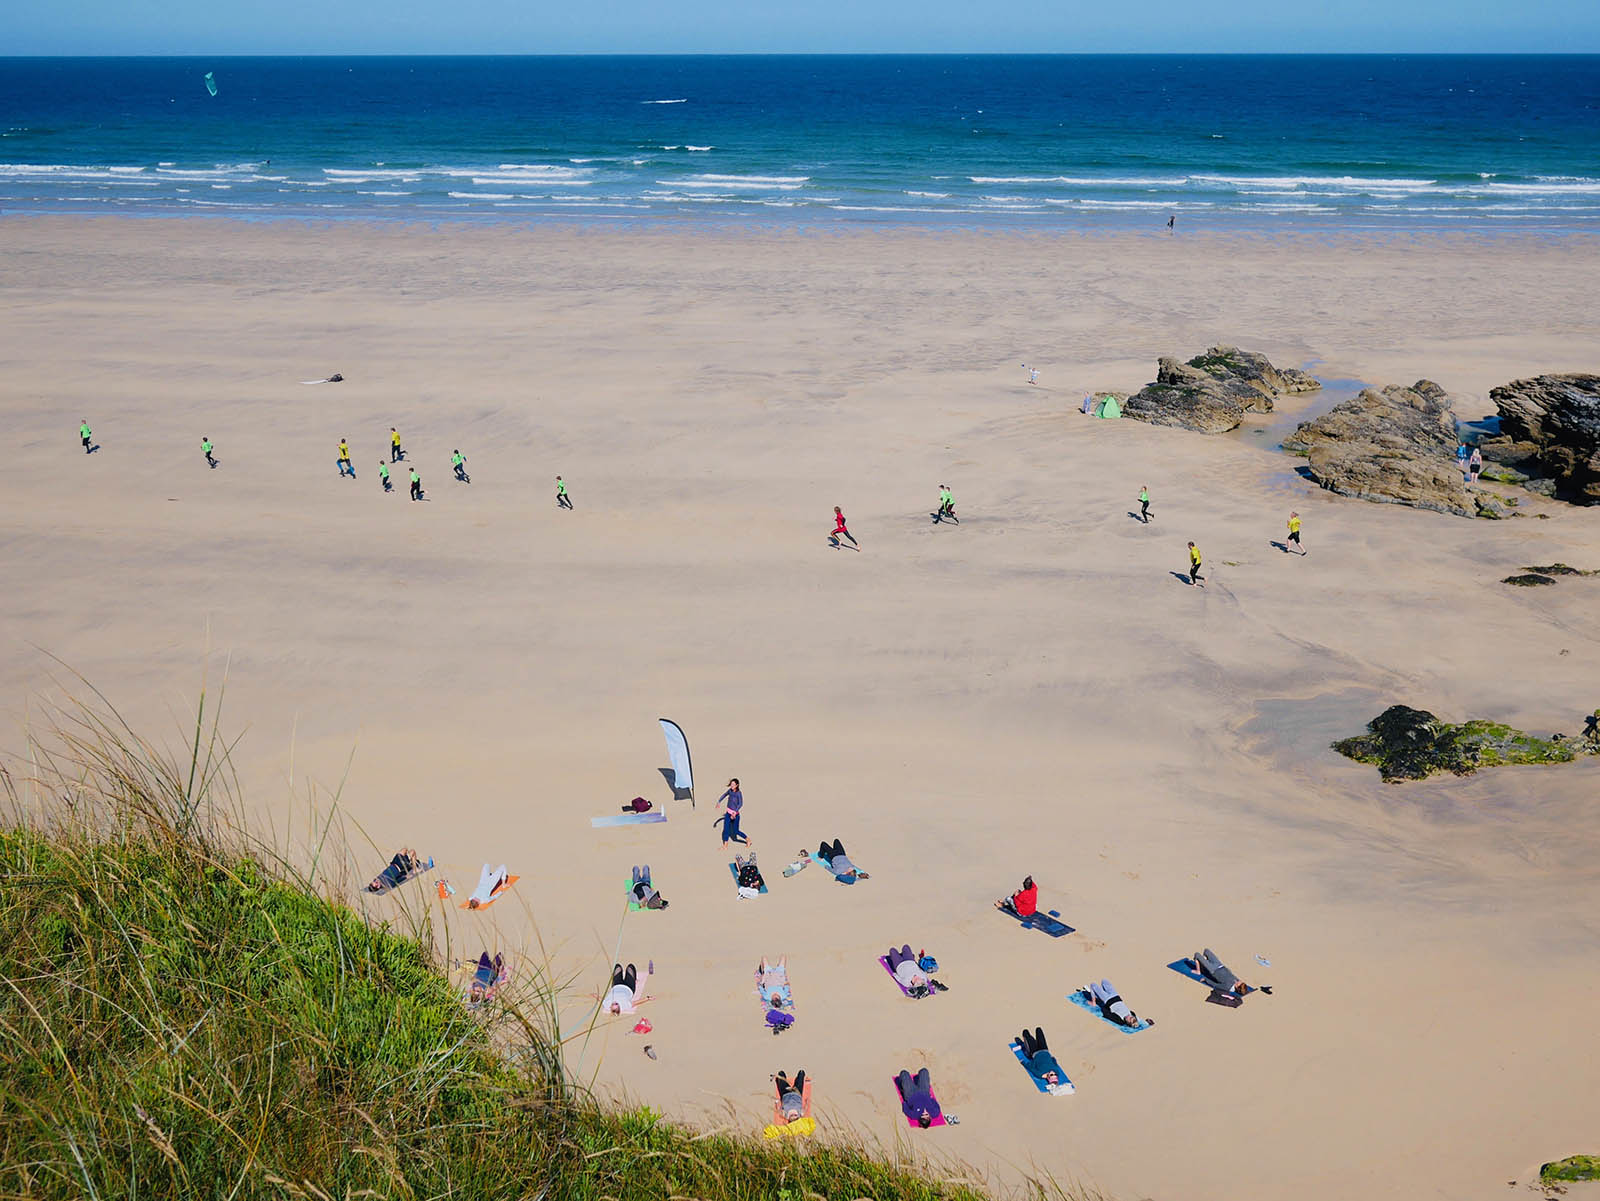 Yoga, surfing and kitesurfing at Gwithian beach.